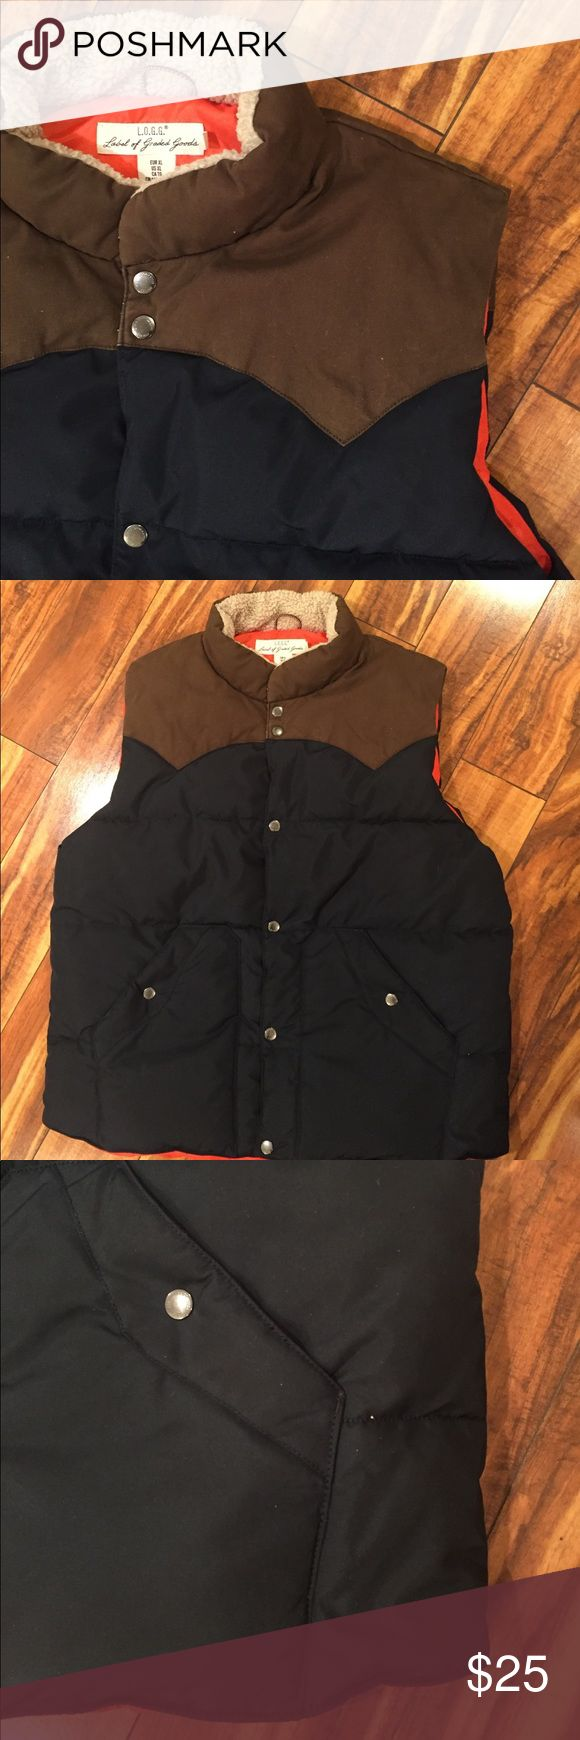 Nice Men's puffer vest. 🍁 In like new condition, men's puffer vest, navy and brown with orange lining.  Inner pocket, two side pockets.  Warm. H&M Jackets & Coats Vests